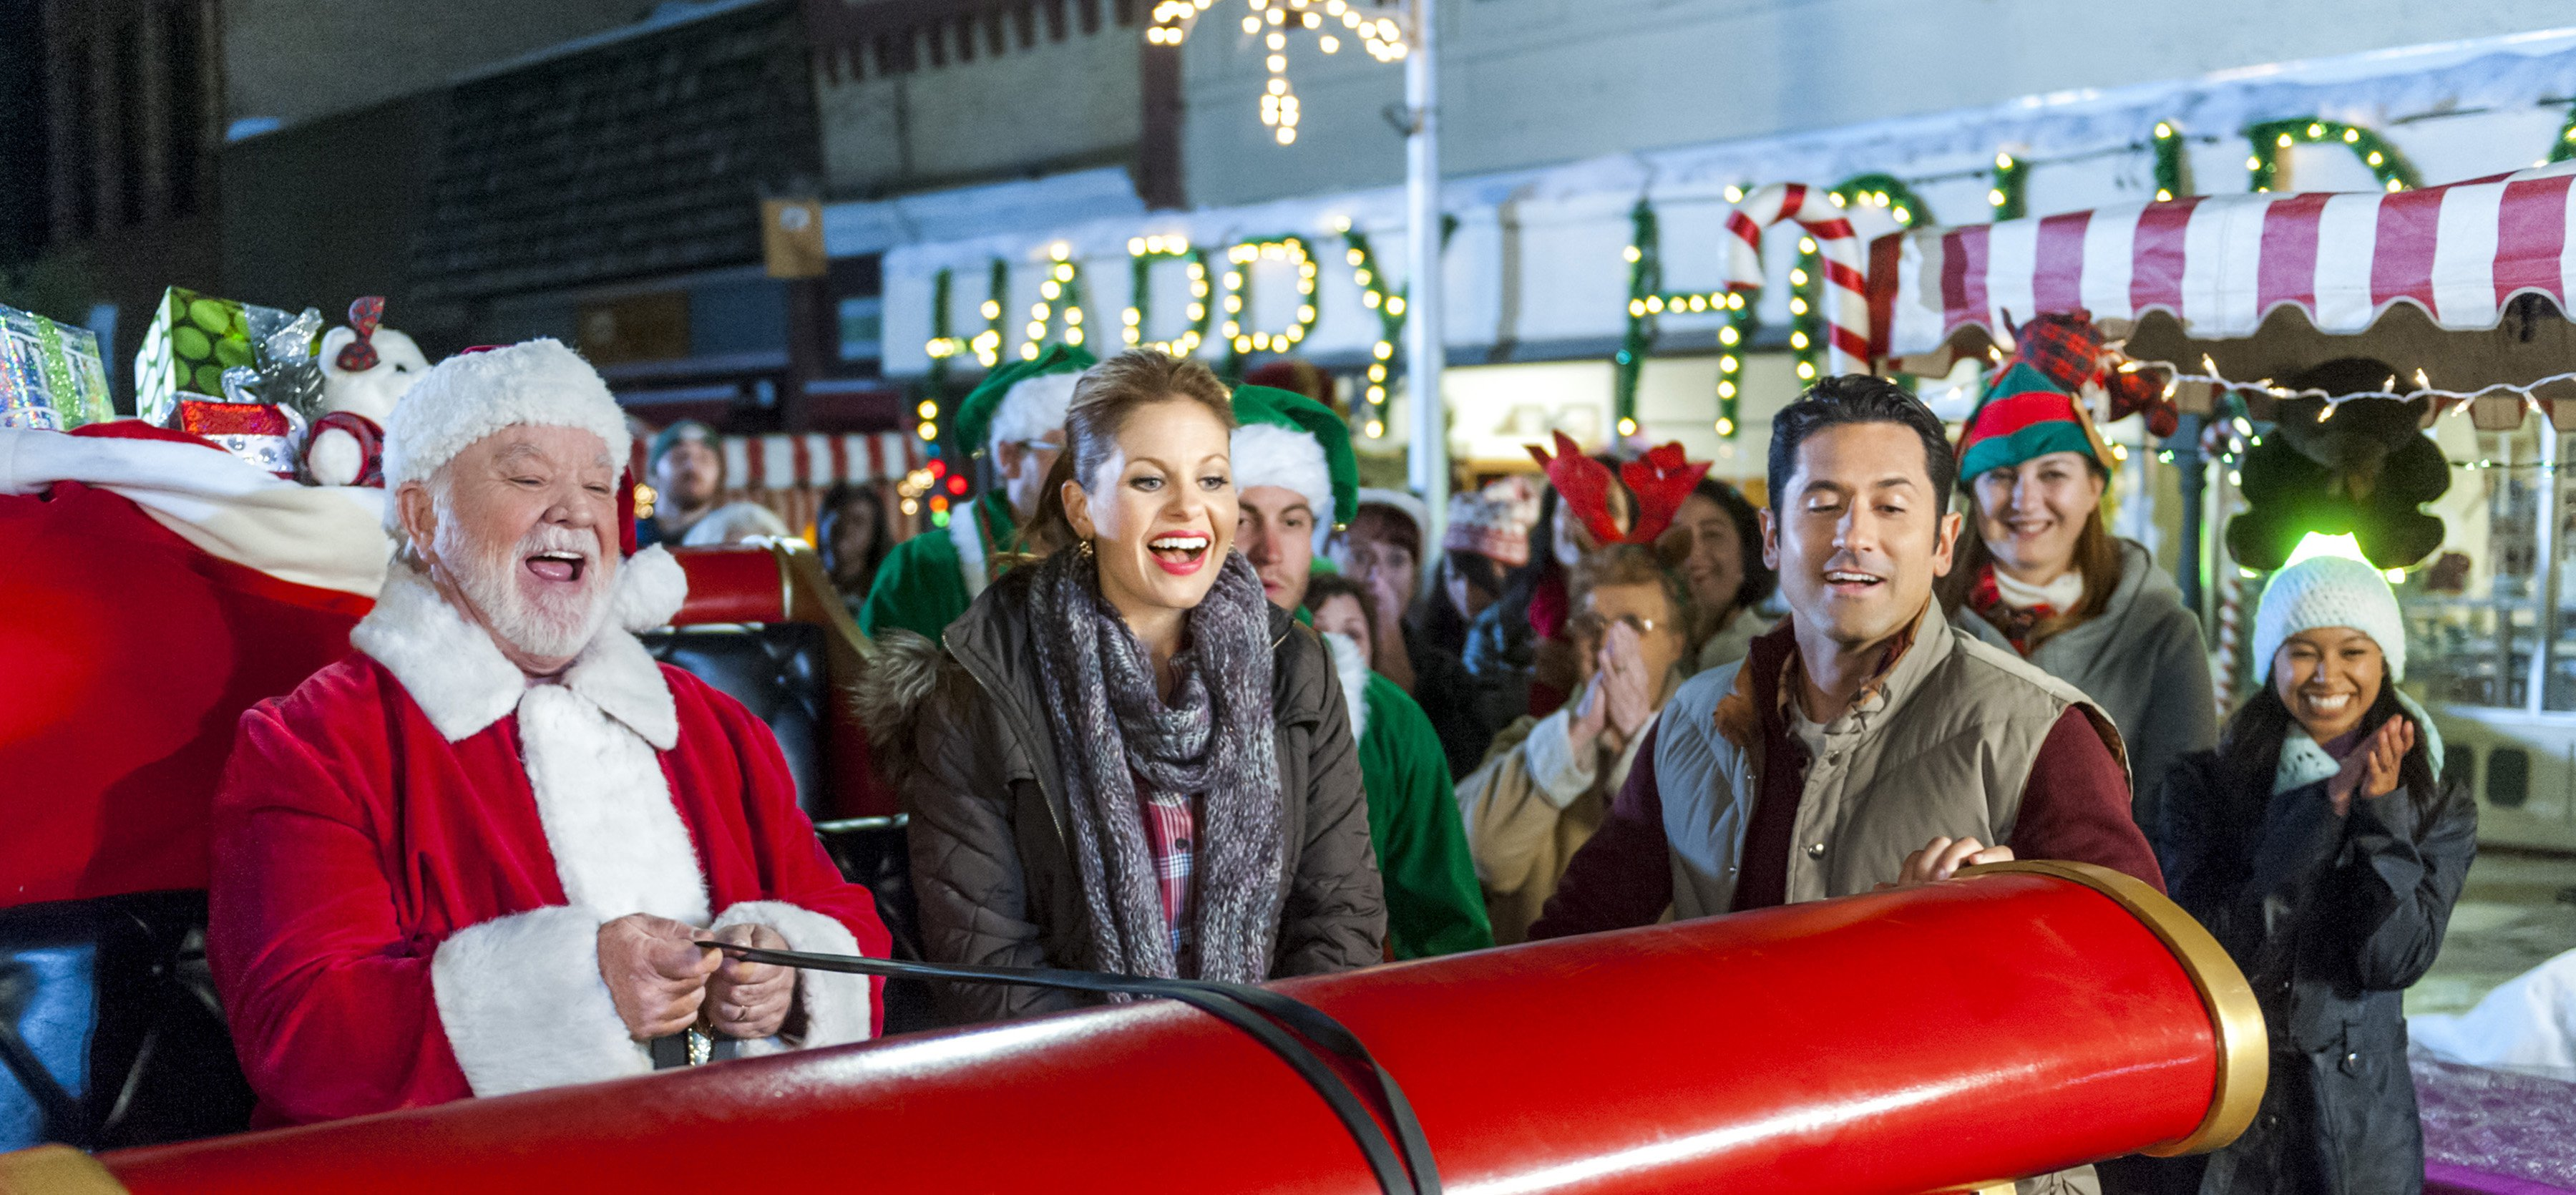 Everything i need to know i learned from hallmark christmas movies